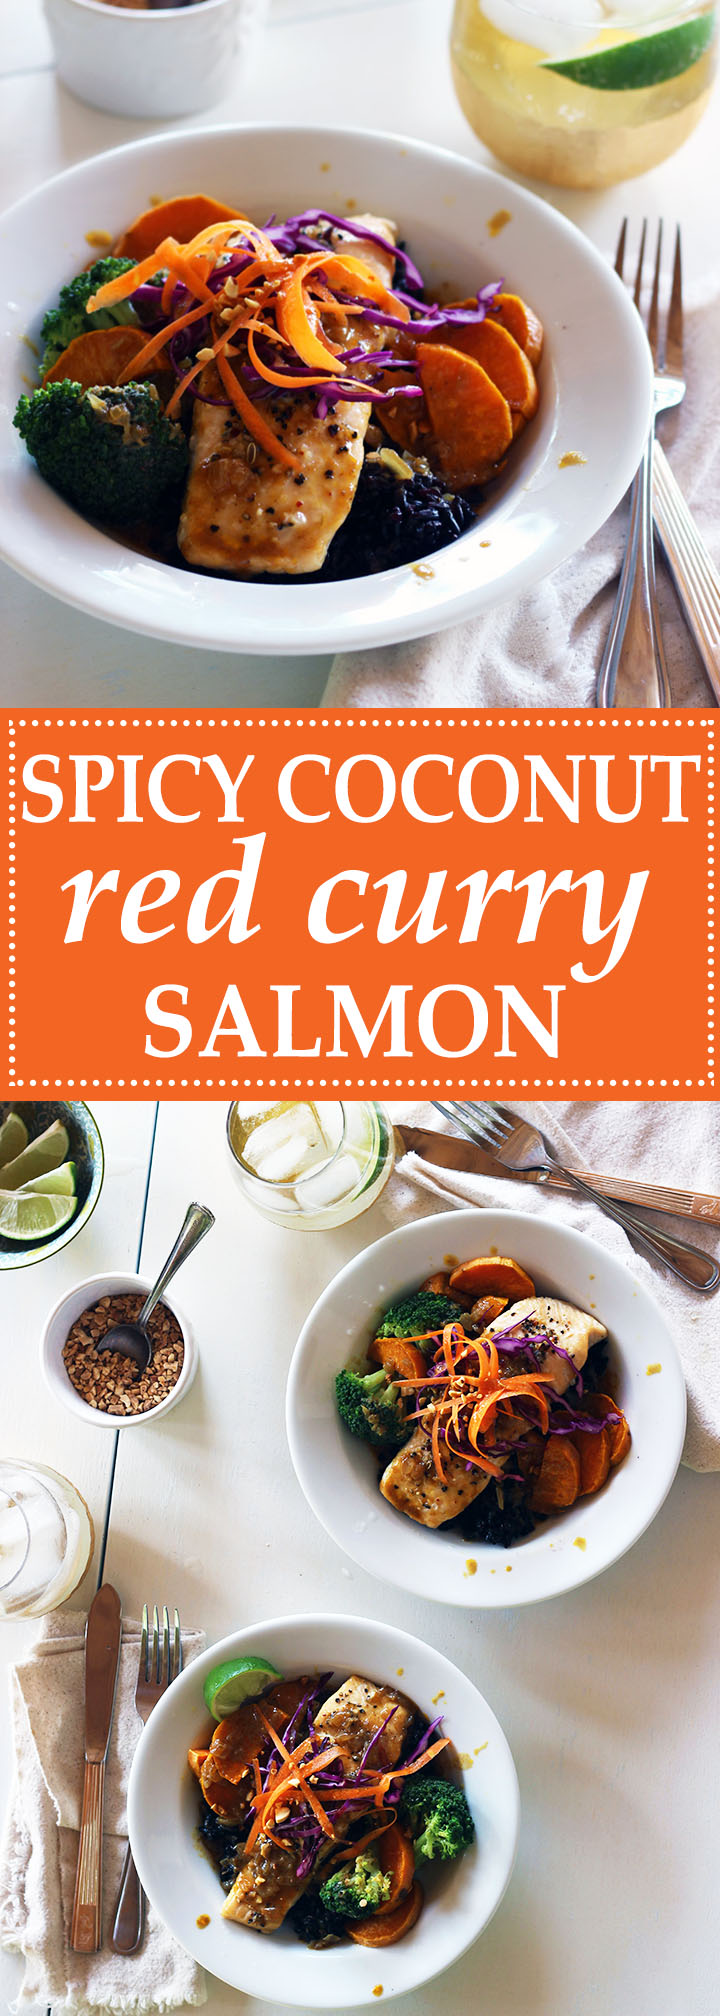 Spicy Coconut Red Curry Salmon | www.thetableofcontents.co